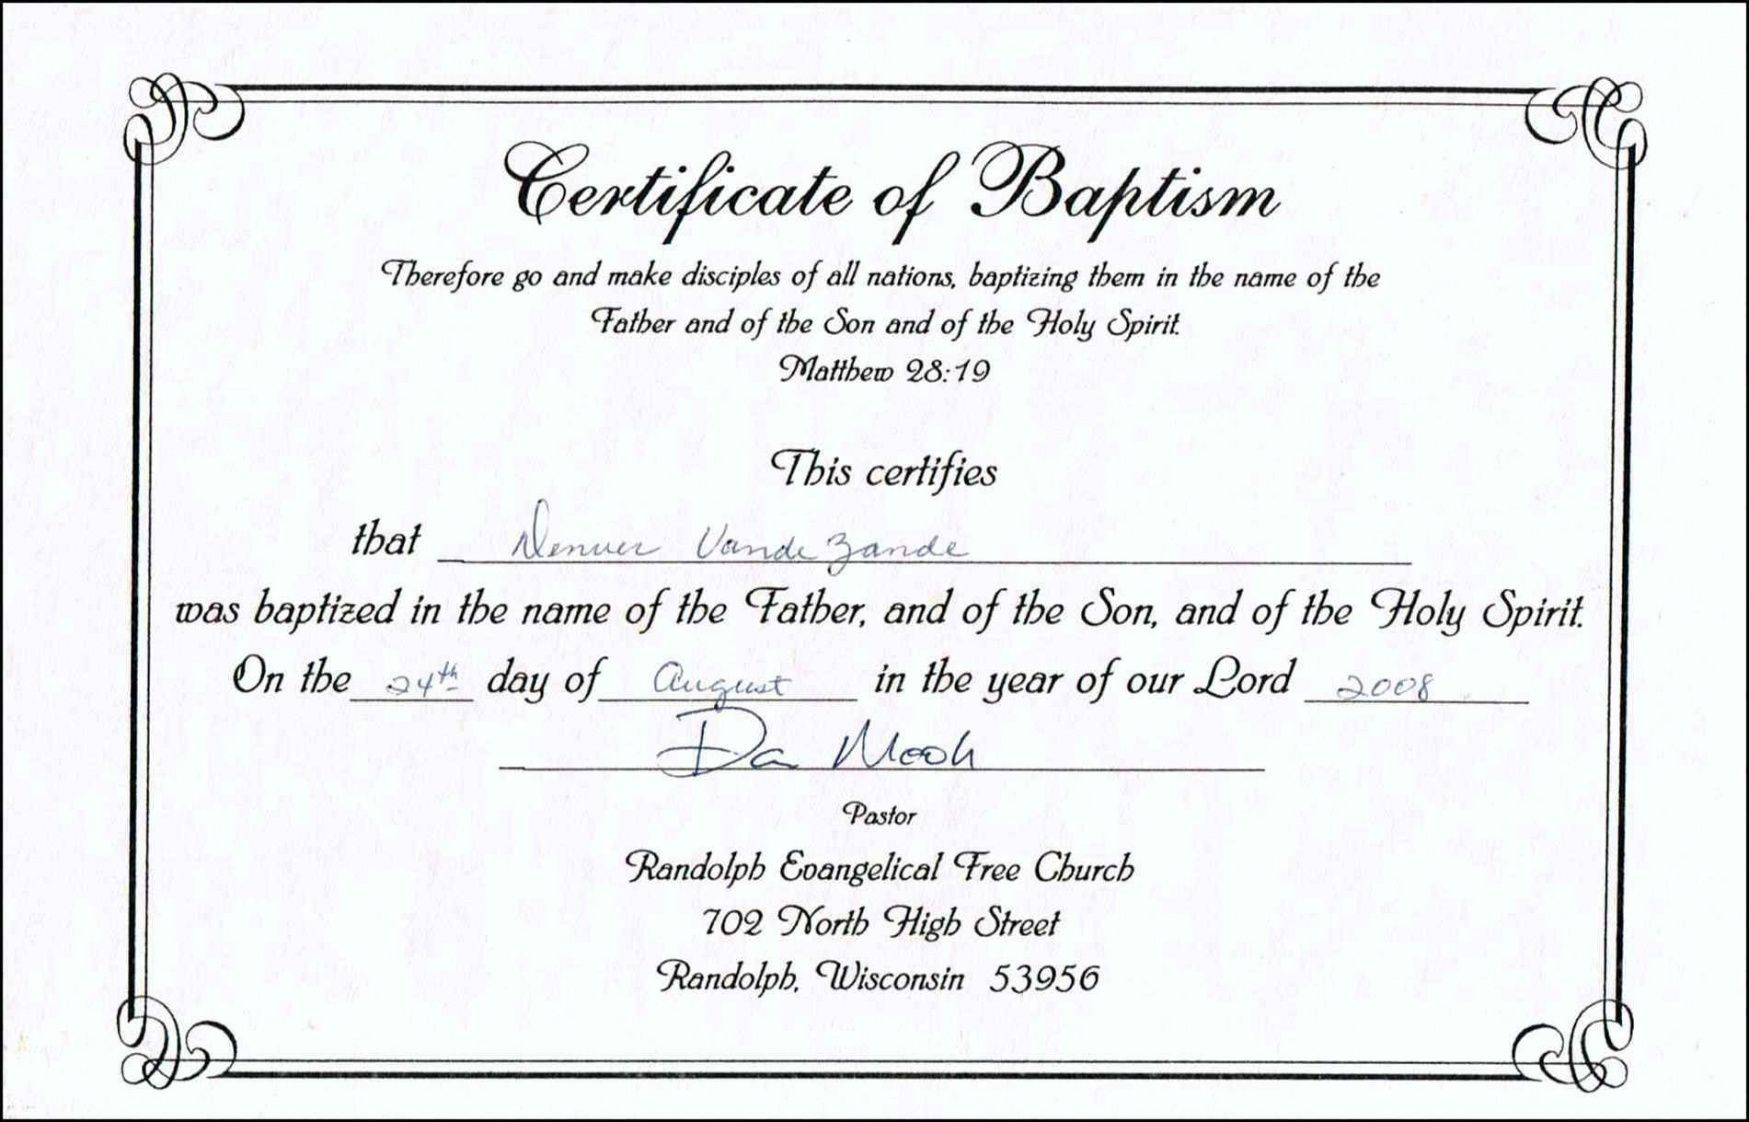 baptism certificate template catholic word free professional in roman catholic baptism certificate template sample